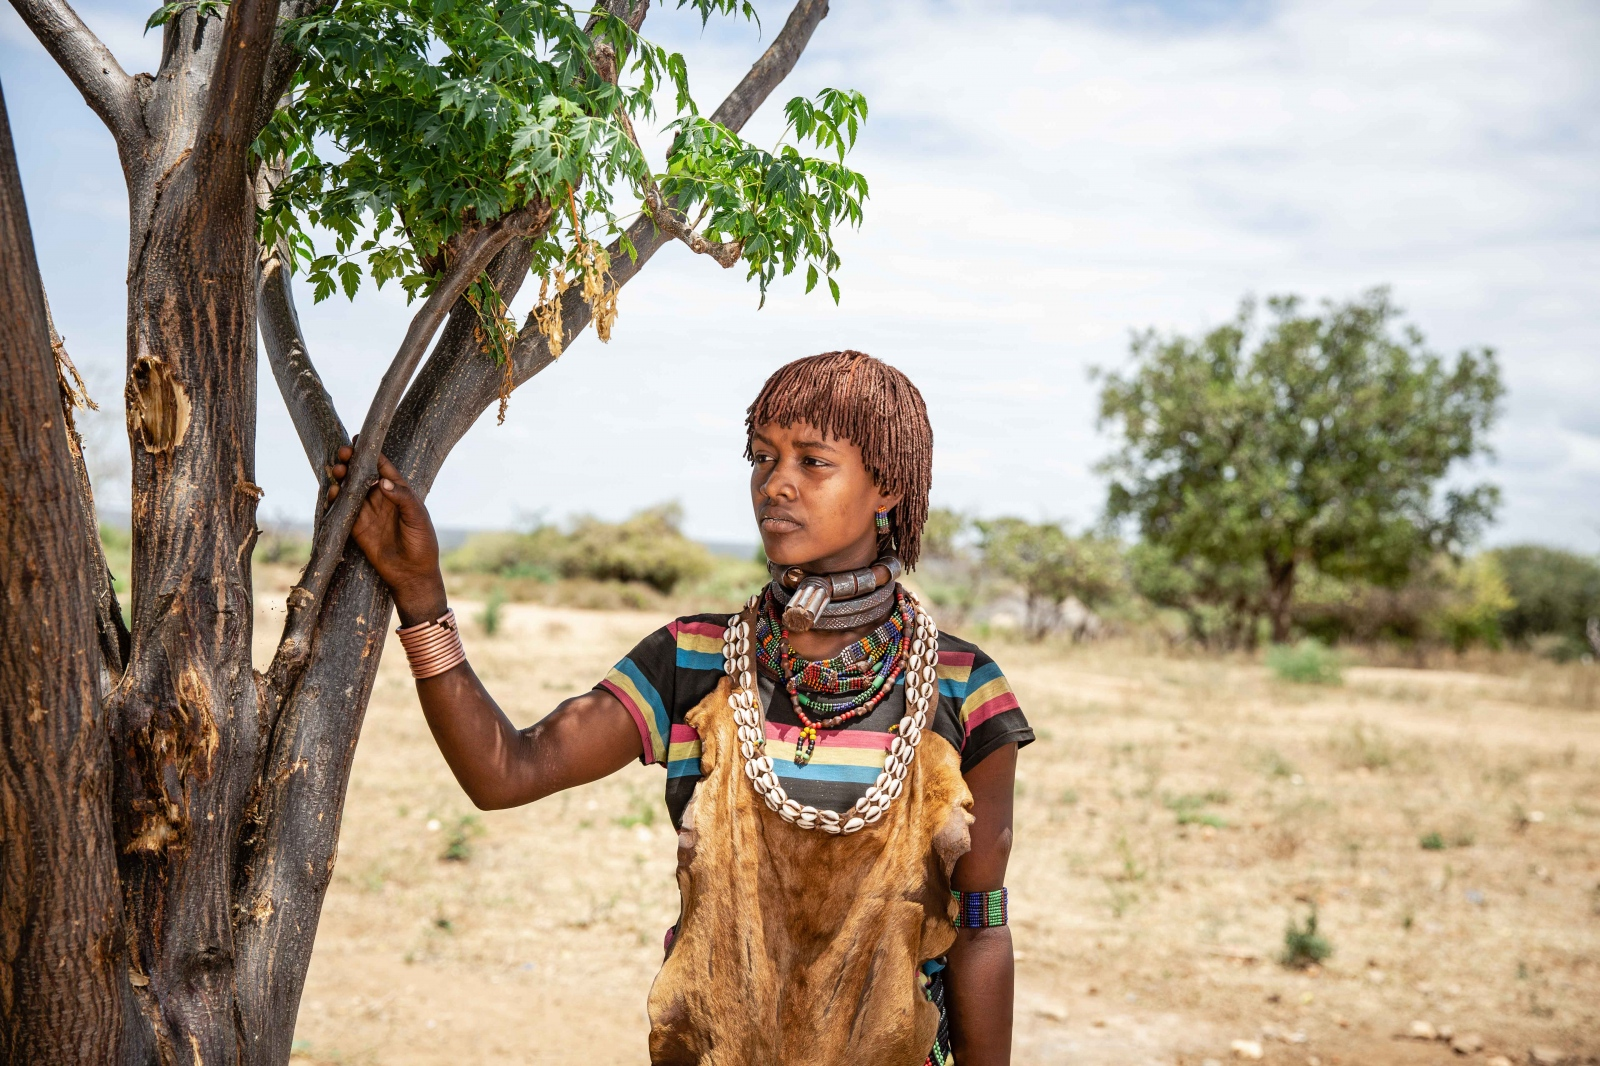 Portrait of Awga in South Omo region, Ethiopia. As primary care-givers, women are the key to tackling the severe poverty that families in South Omo face, and with the help of Farm Africa's Livestock for Livelihoods project, they can be able to. For Farm Africa